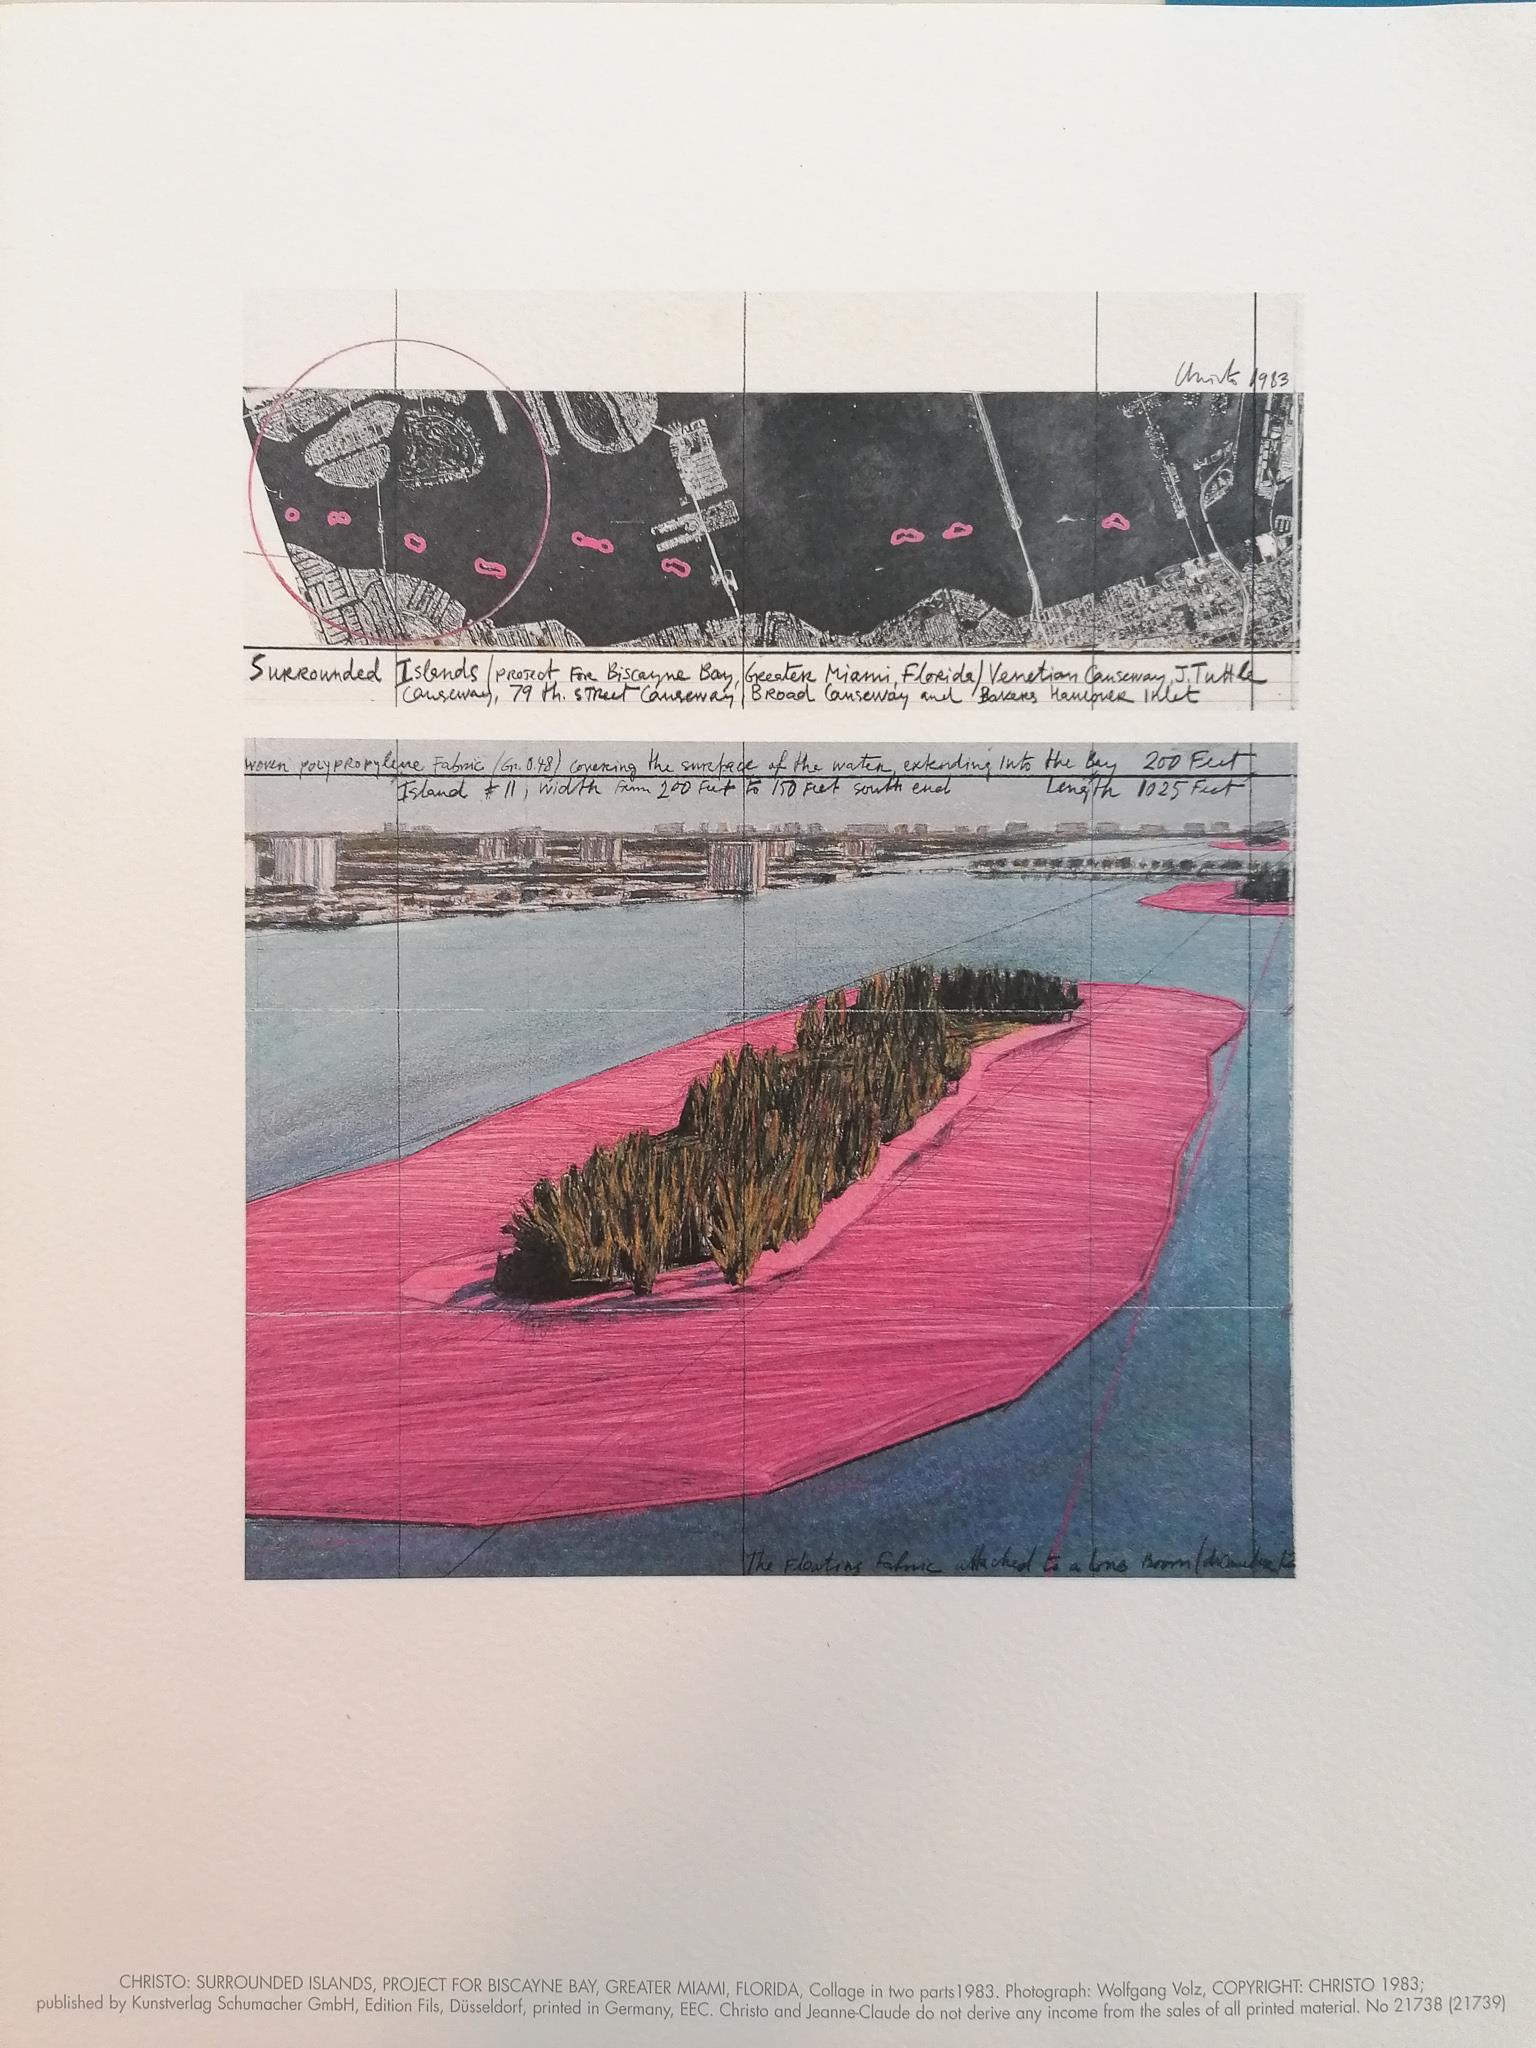 surrounded islands, unsigniert - Christo - k-2108CHR3